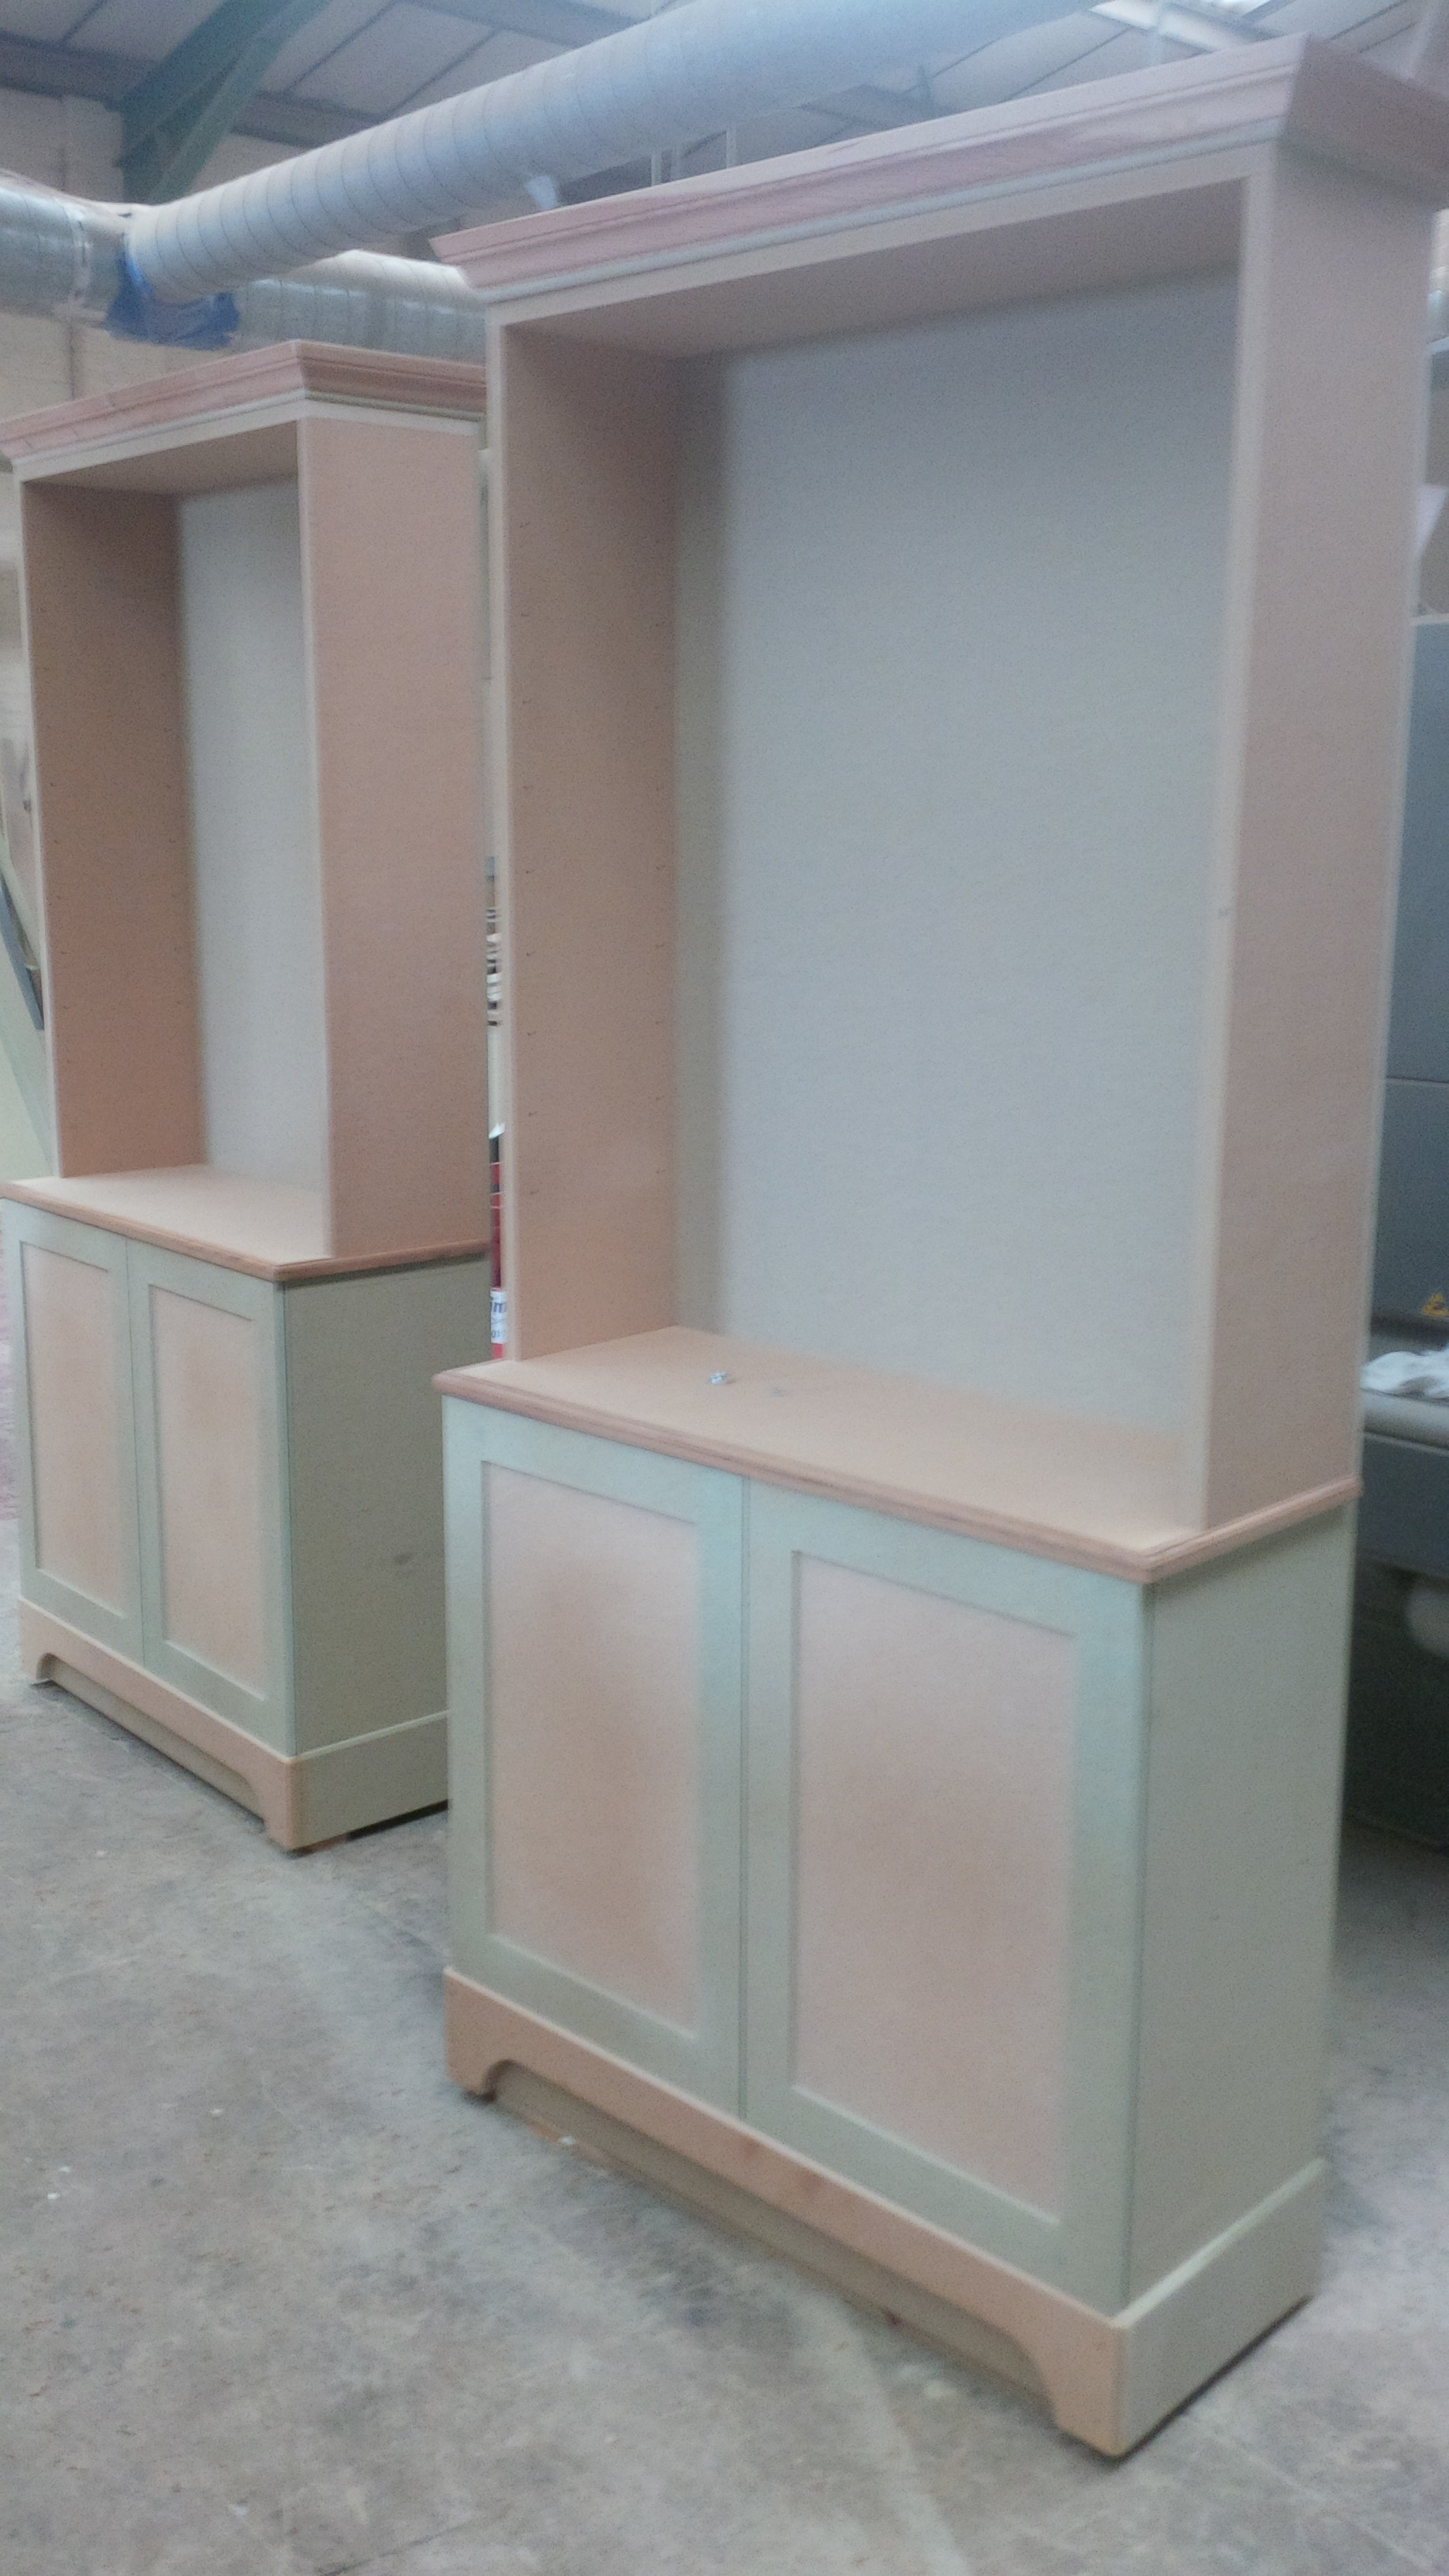 Bespoke book cases before being painted